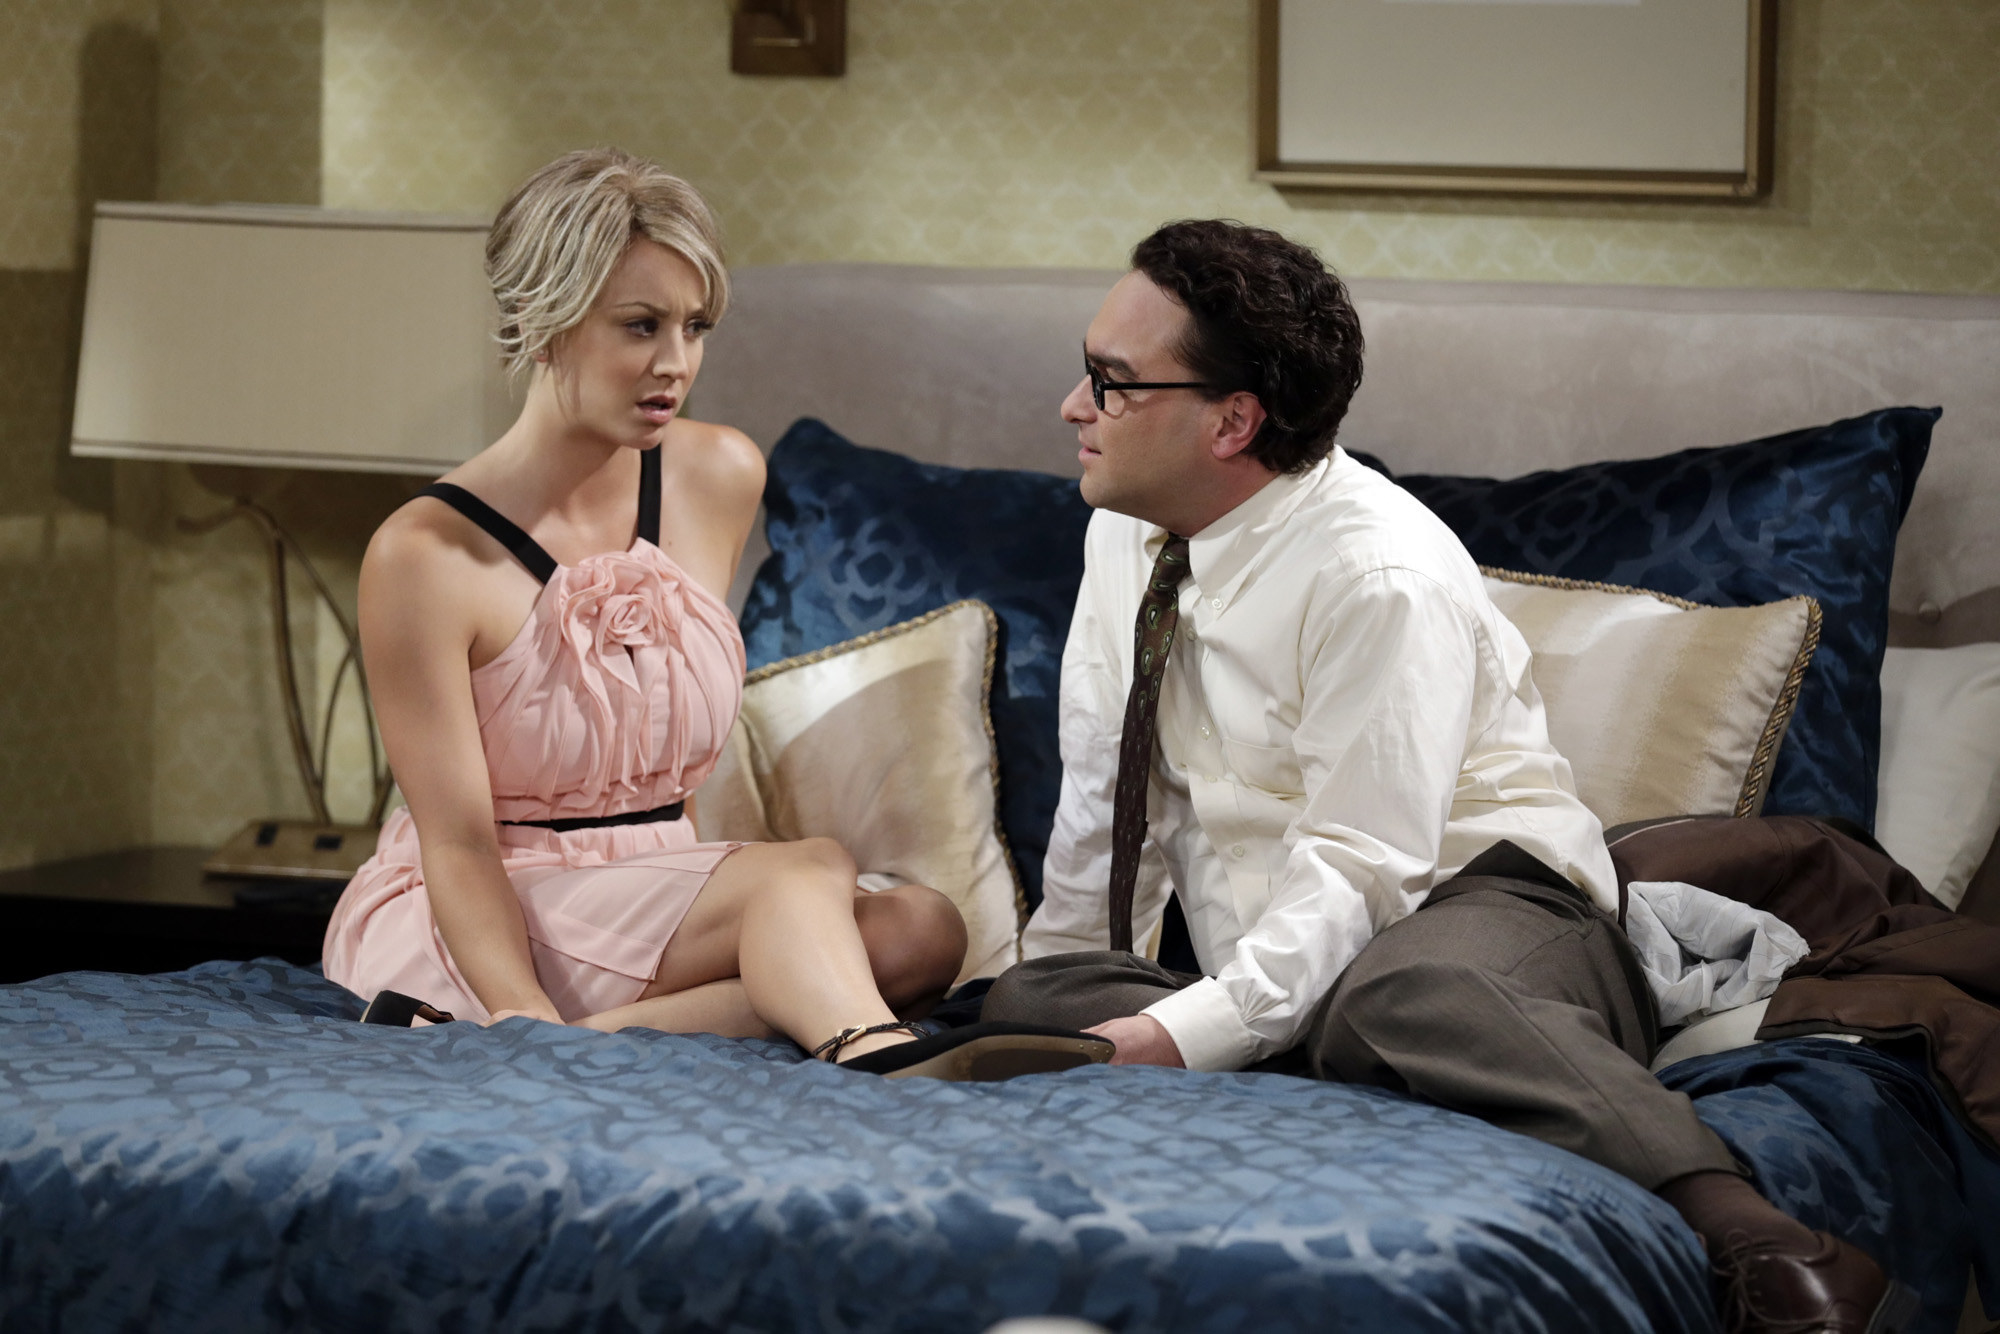 Penny and Leonard sitting clothed on a bed in The Big Bang Theory